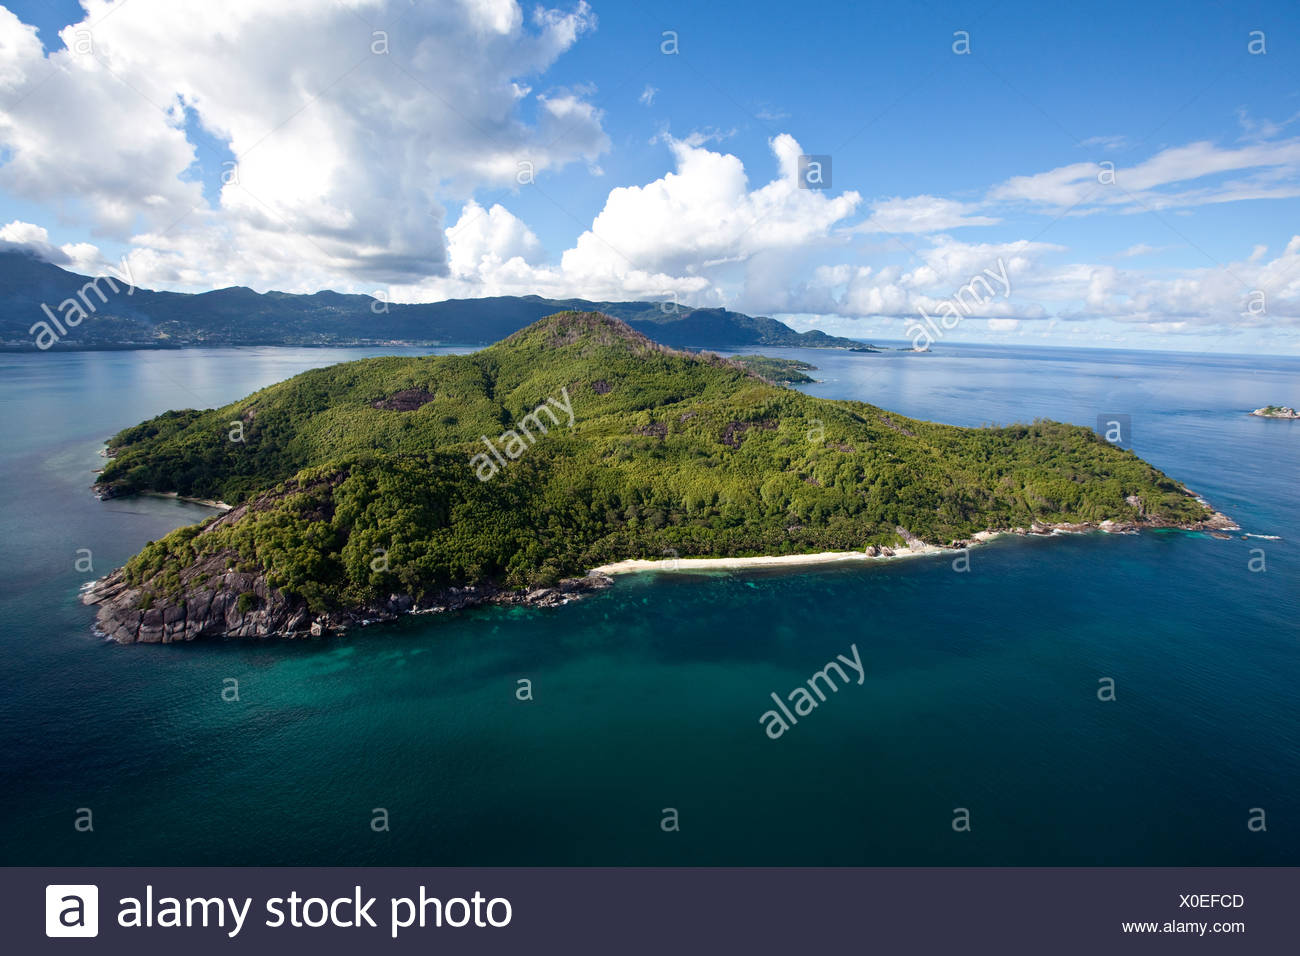 The island Ile Moyenne, in the back the island of Mahe, Seychelles, Indian Ocean, Africa - Stock Image